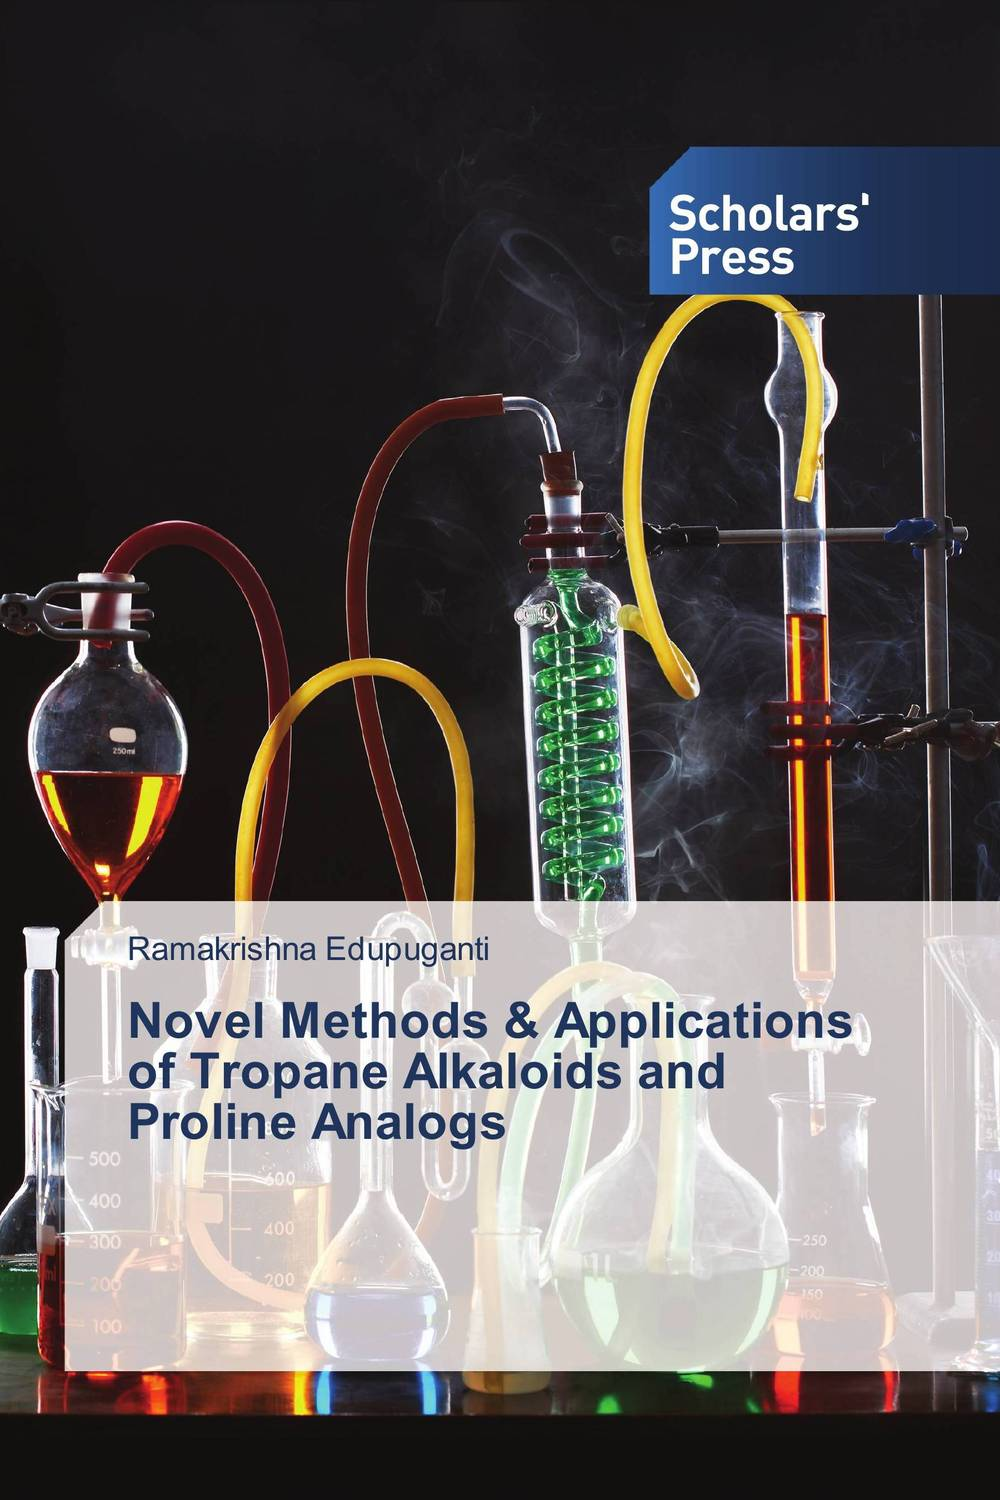 Novel Methods & Applications of Tropane Alkaloids and Proline Analogs drug discovery and design